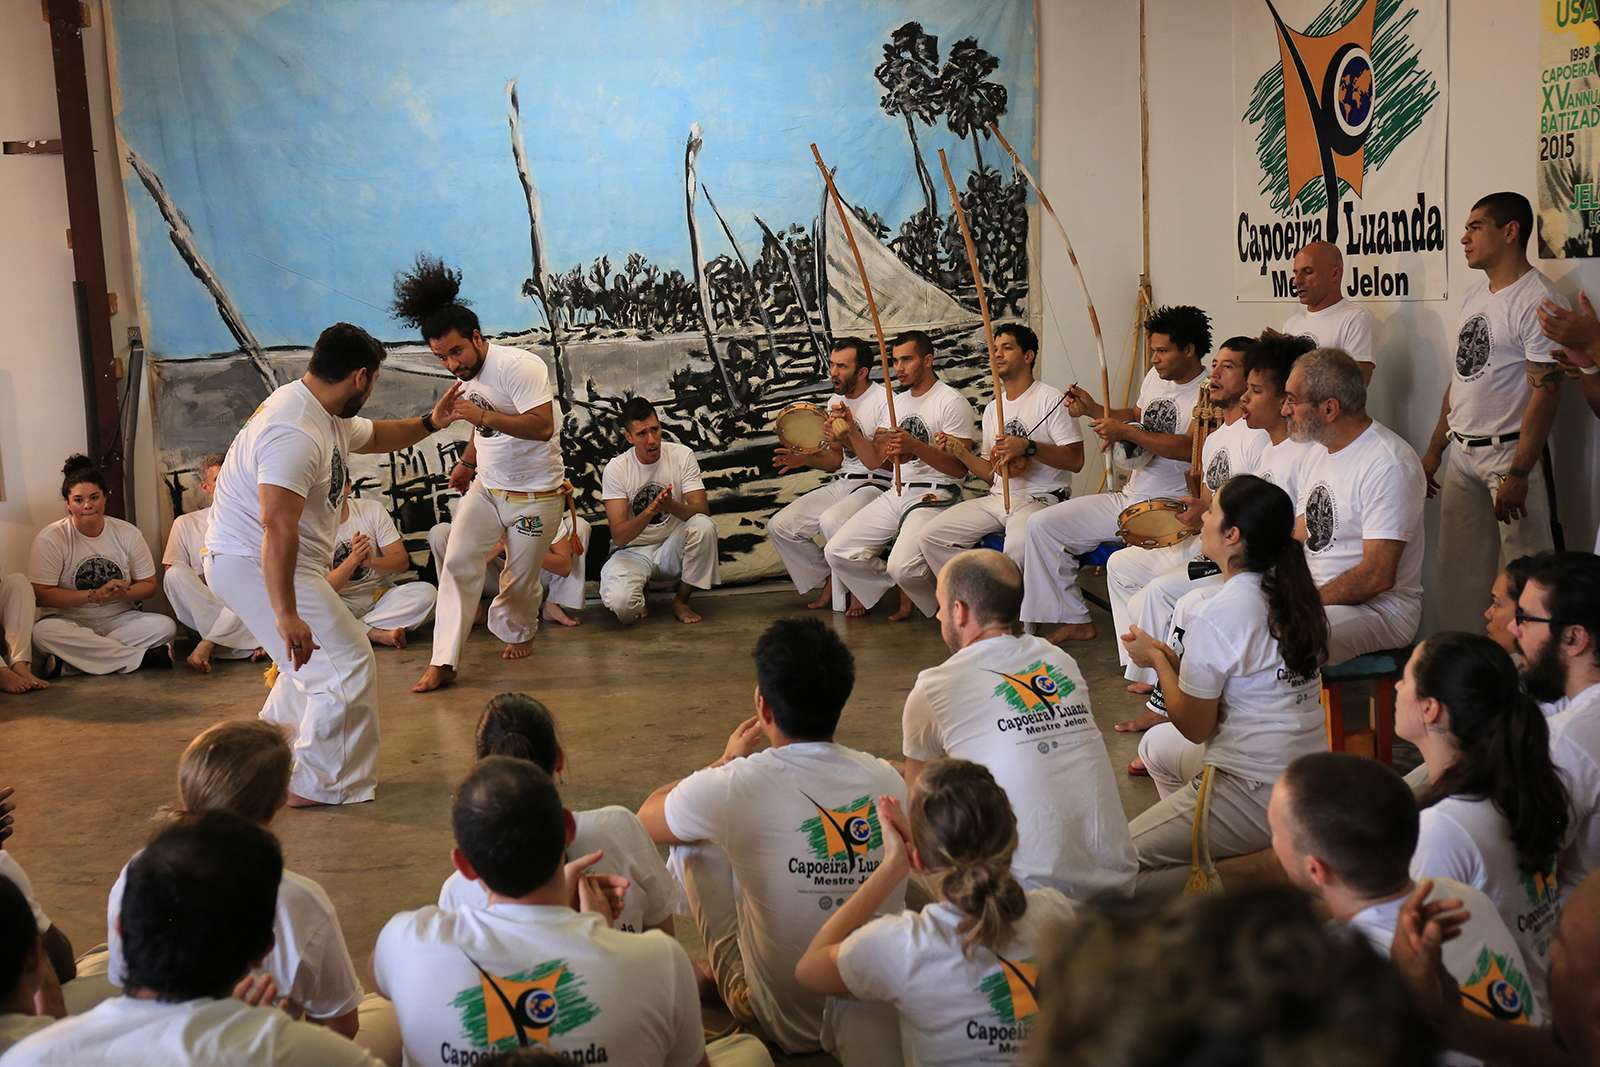 Brazilian Arts Foundation, Capoeira performance